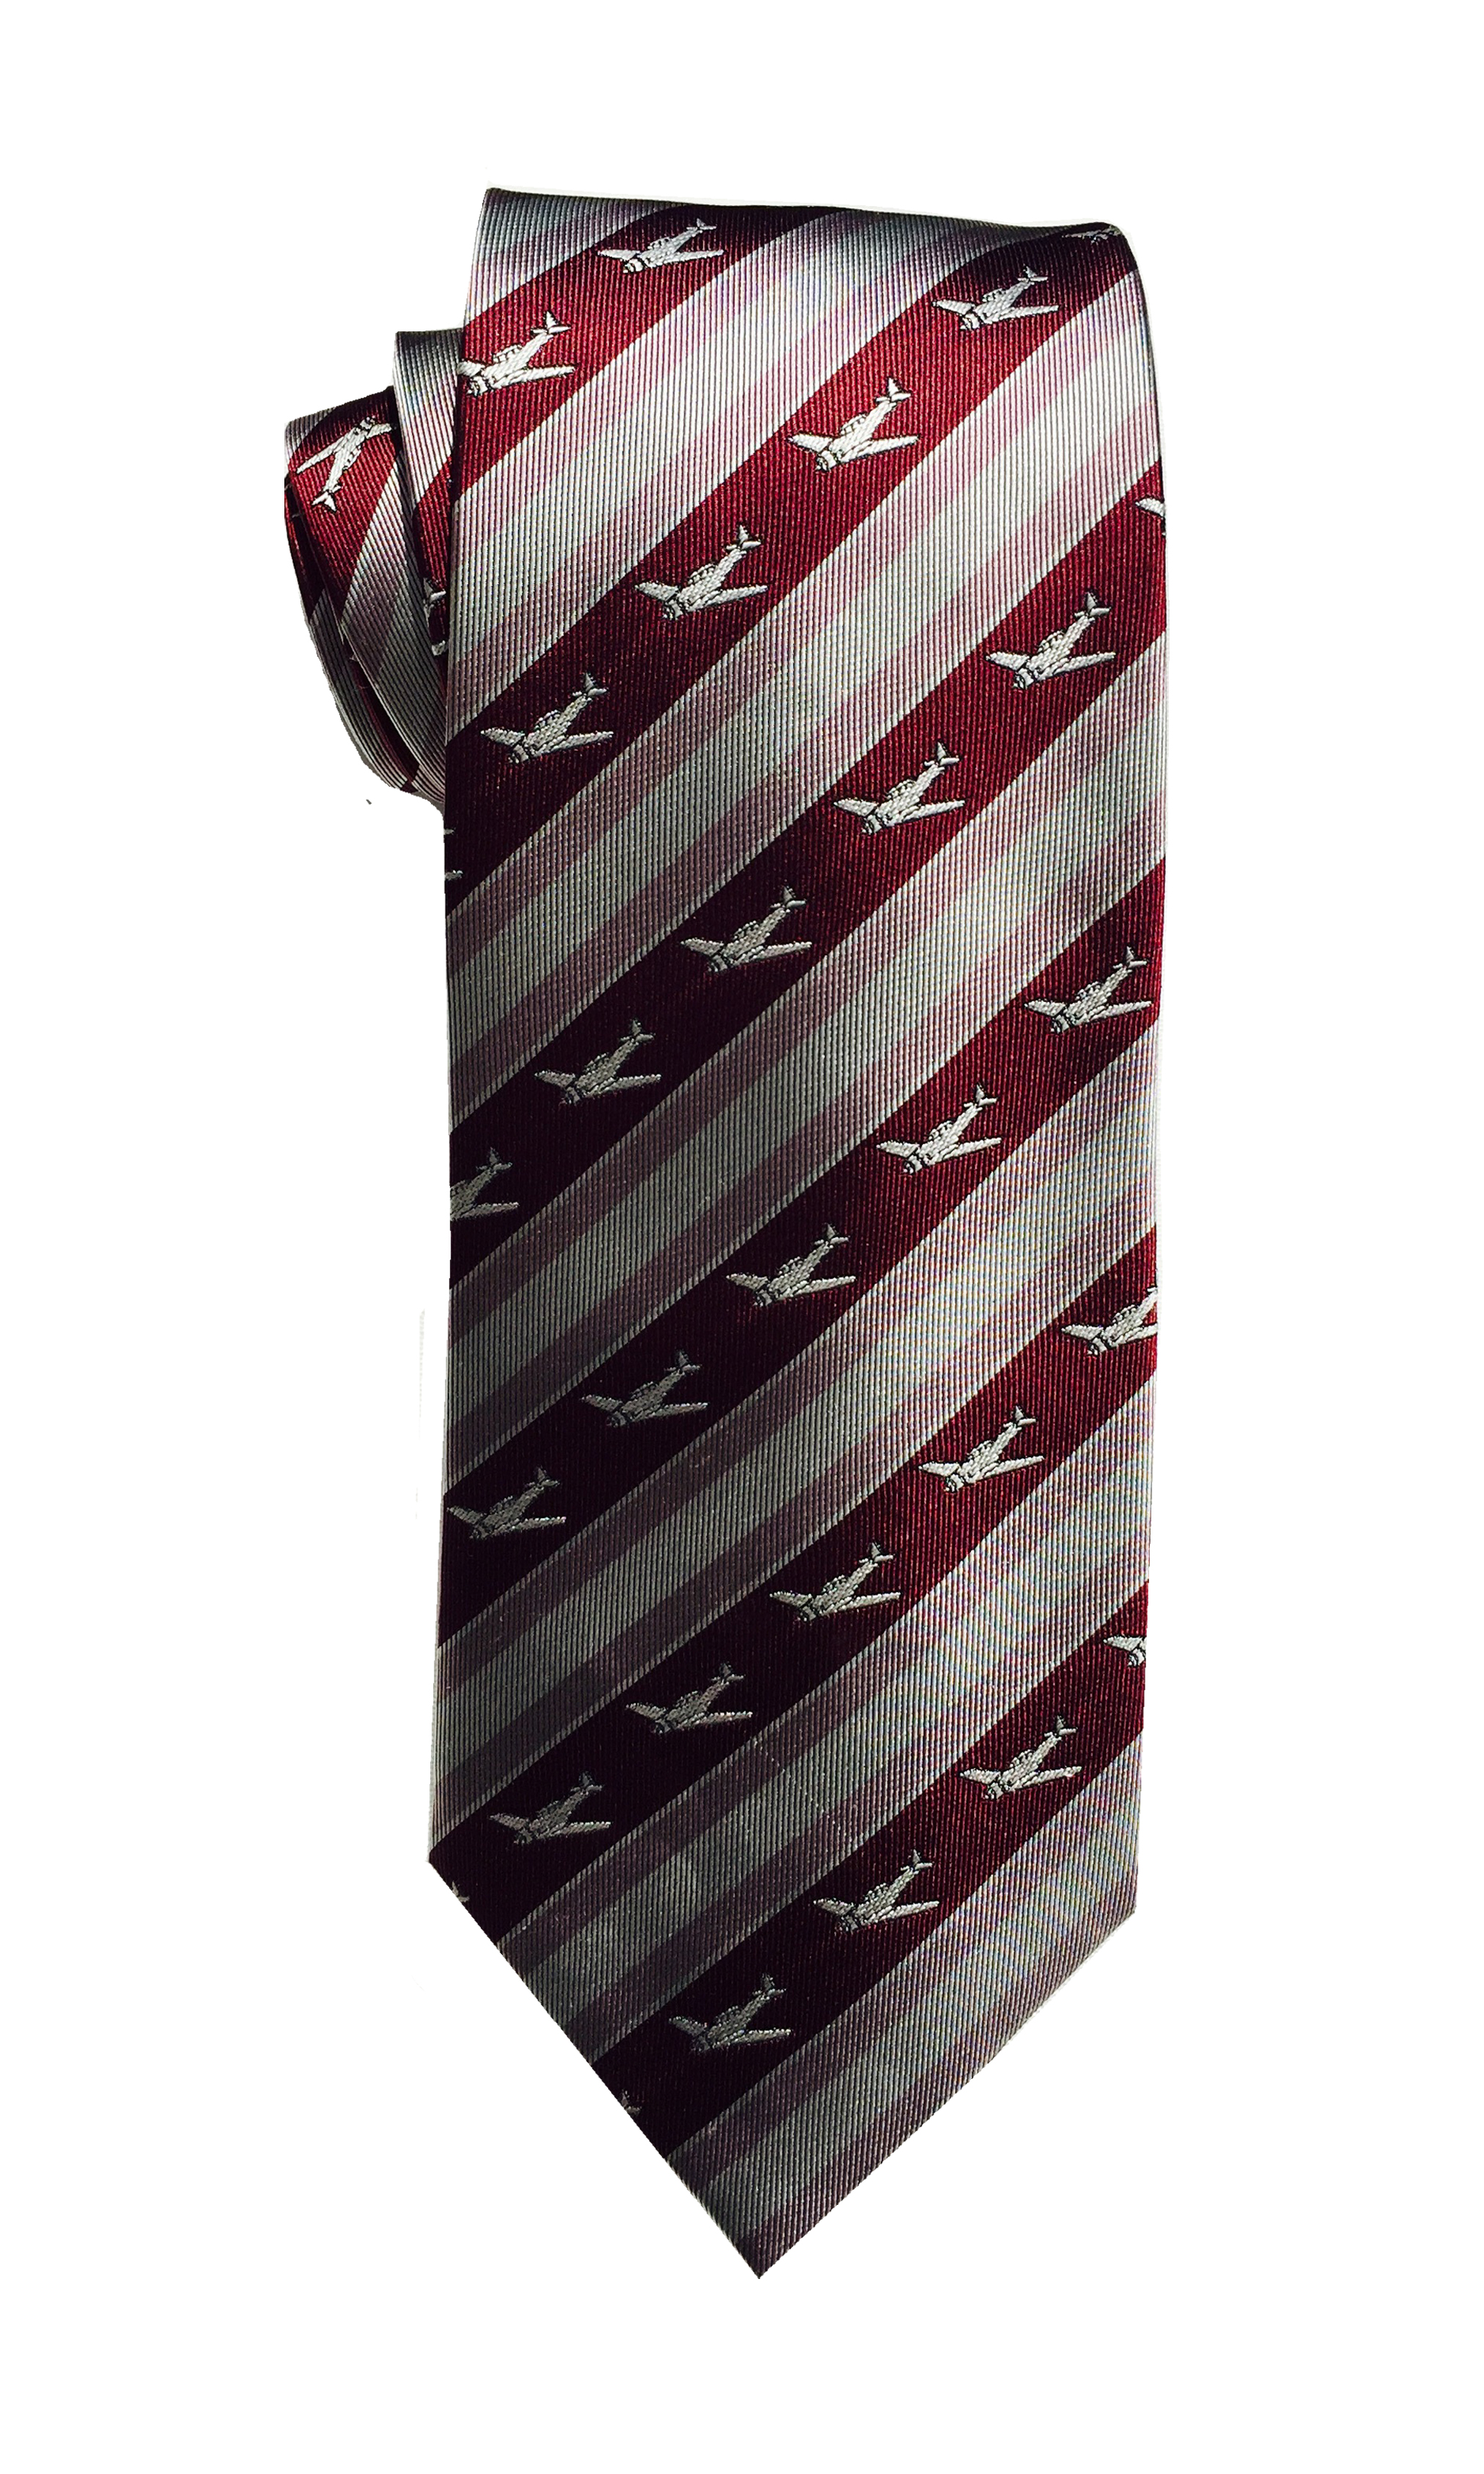 T-6 airplane tie in burgundy